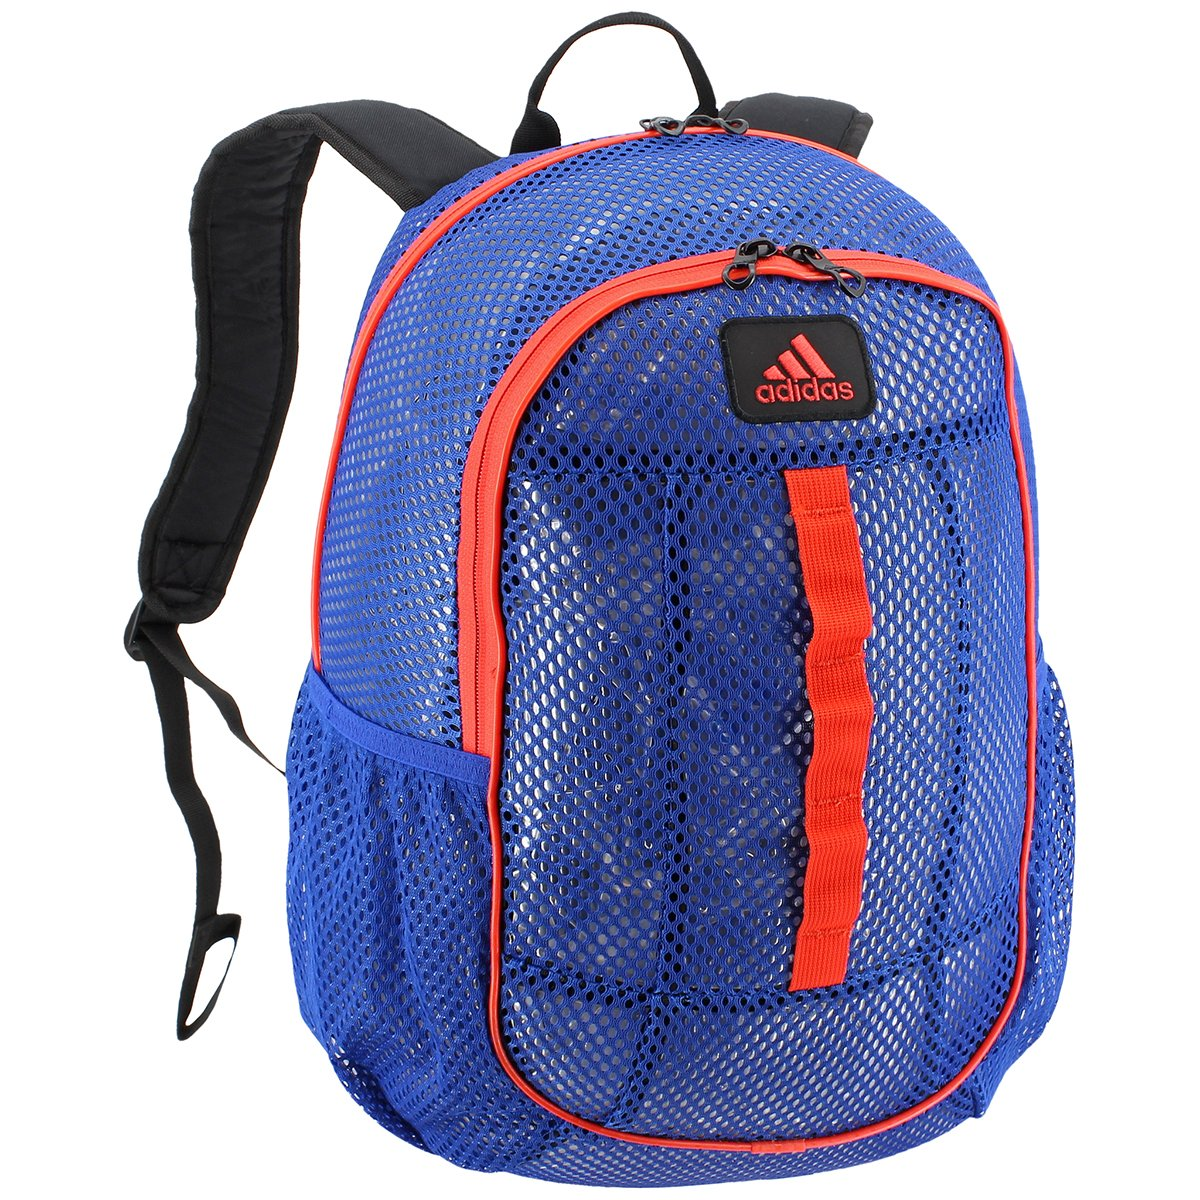 adidas Hermosa Mesh Backpack, Royal/Orange, One Size